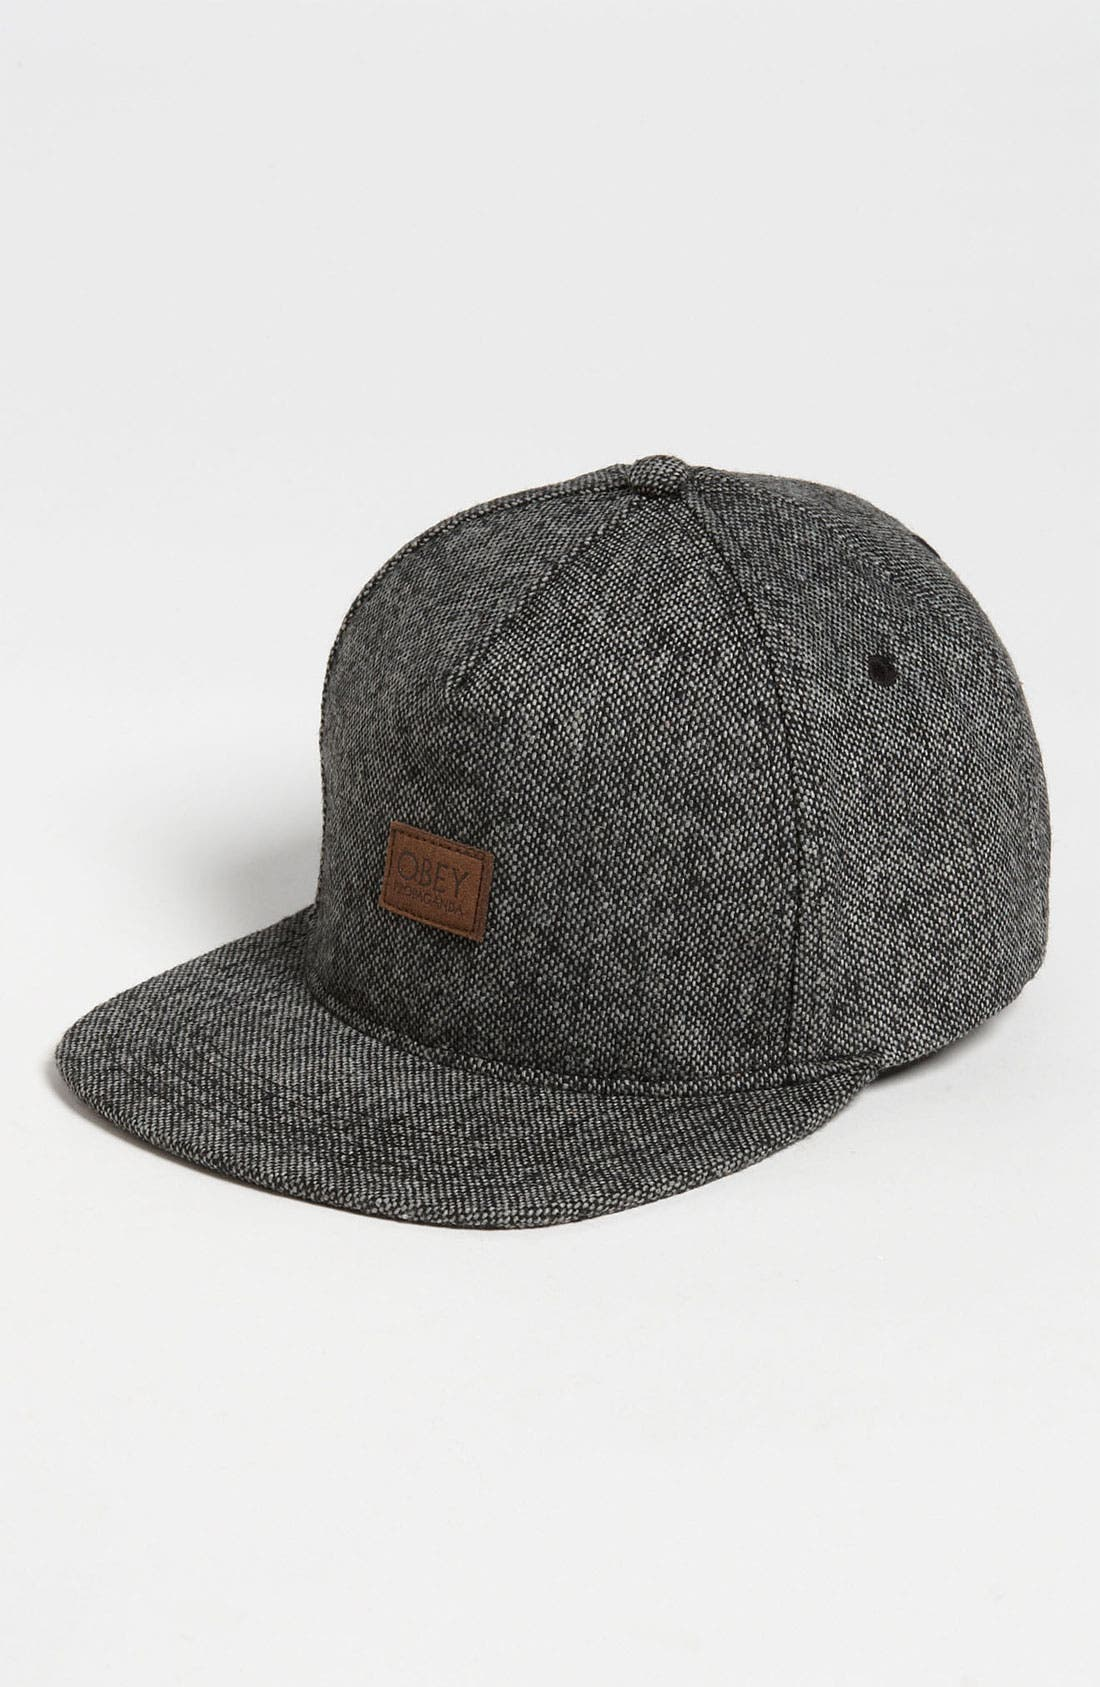 Alternate Image 1 Selected - Obey 'Outland Luxe' Snapback Baseball Cap